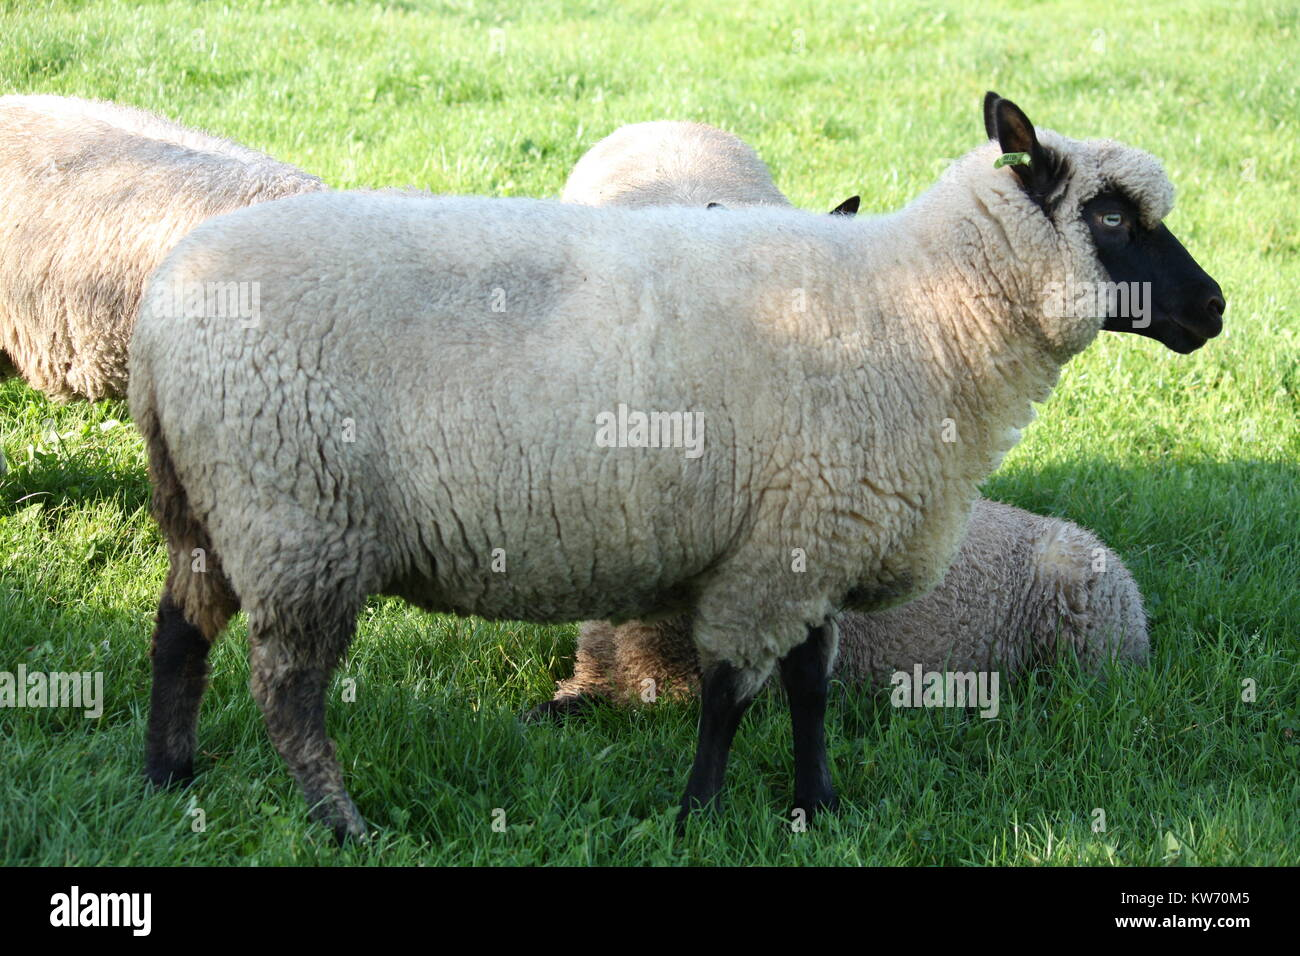 Dutch white sheep with a black face in the grass Stock Photo ... for Sheep Face Black And White  585hul